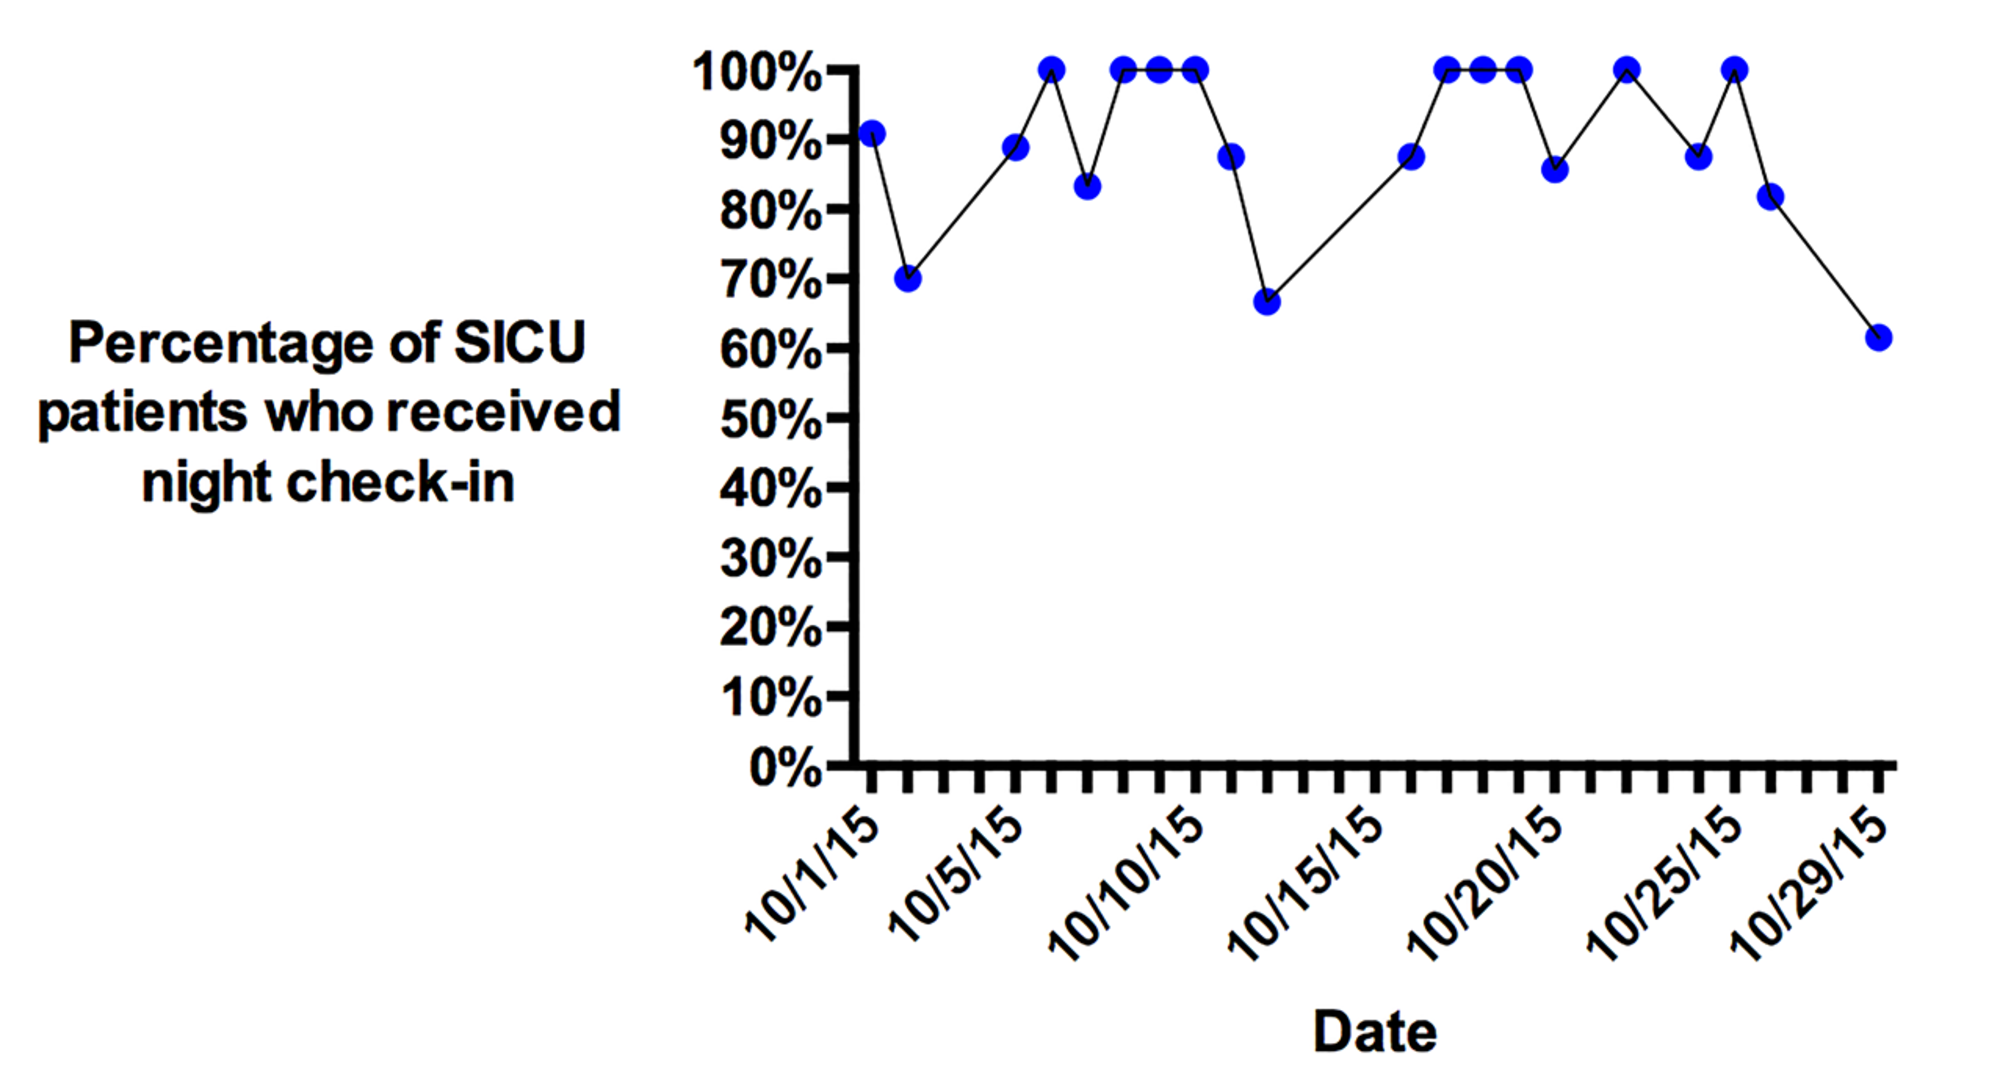 Results-of-the-one-month-survey-measuring-nightly-check-in-compliance-for-SICU-patients